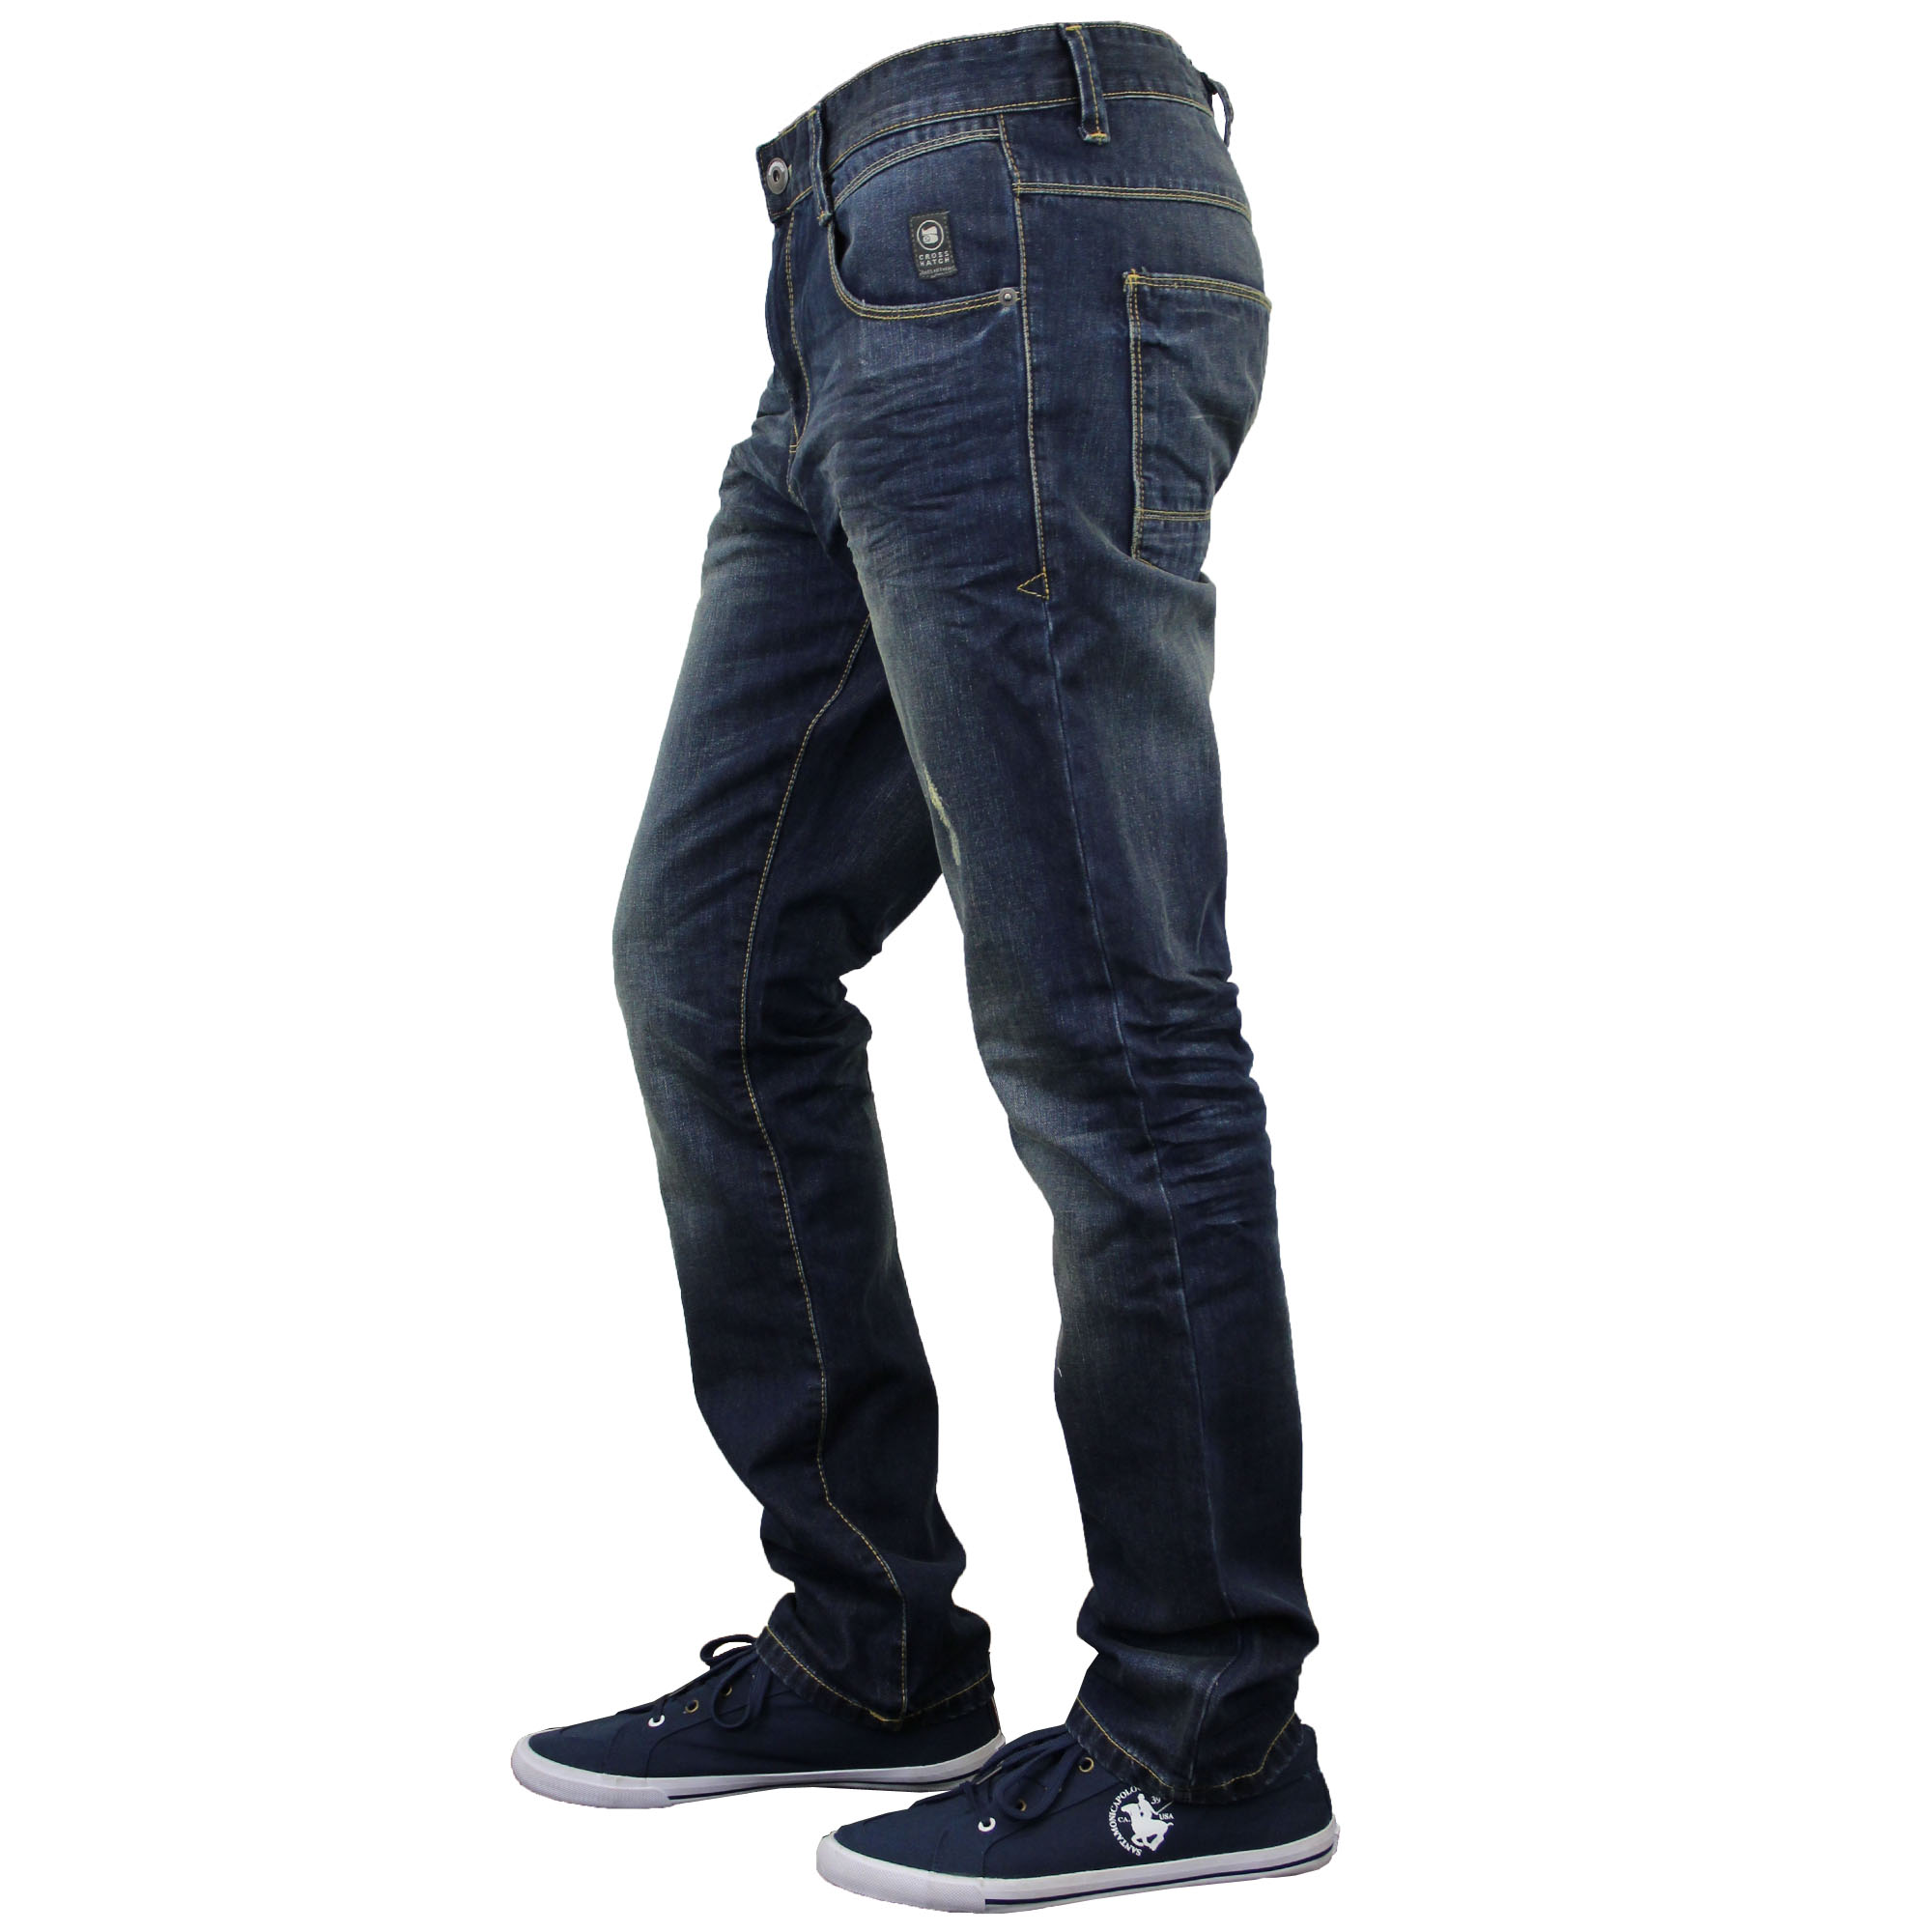 Trouser Jeans Men, Wholesale Various High Quality Trouser Jeans Men Products from Global Trouser Jeans Men Suppliers and Trouser Jeans Men Factory,Importer,Exporter at softhome24.ml